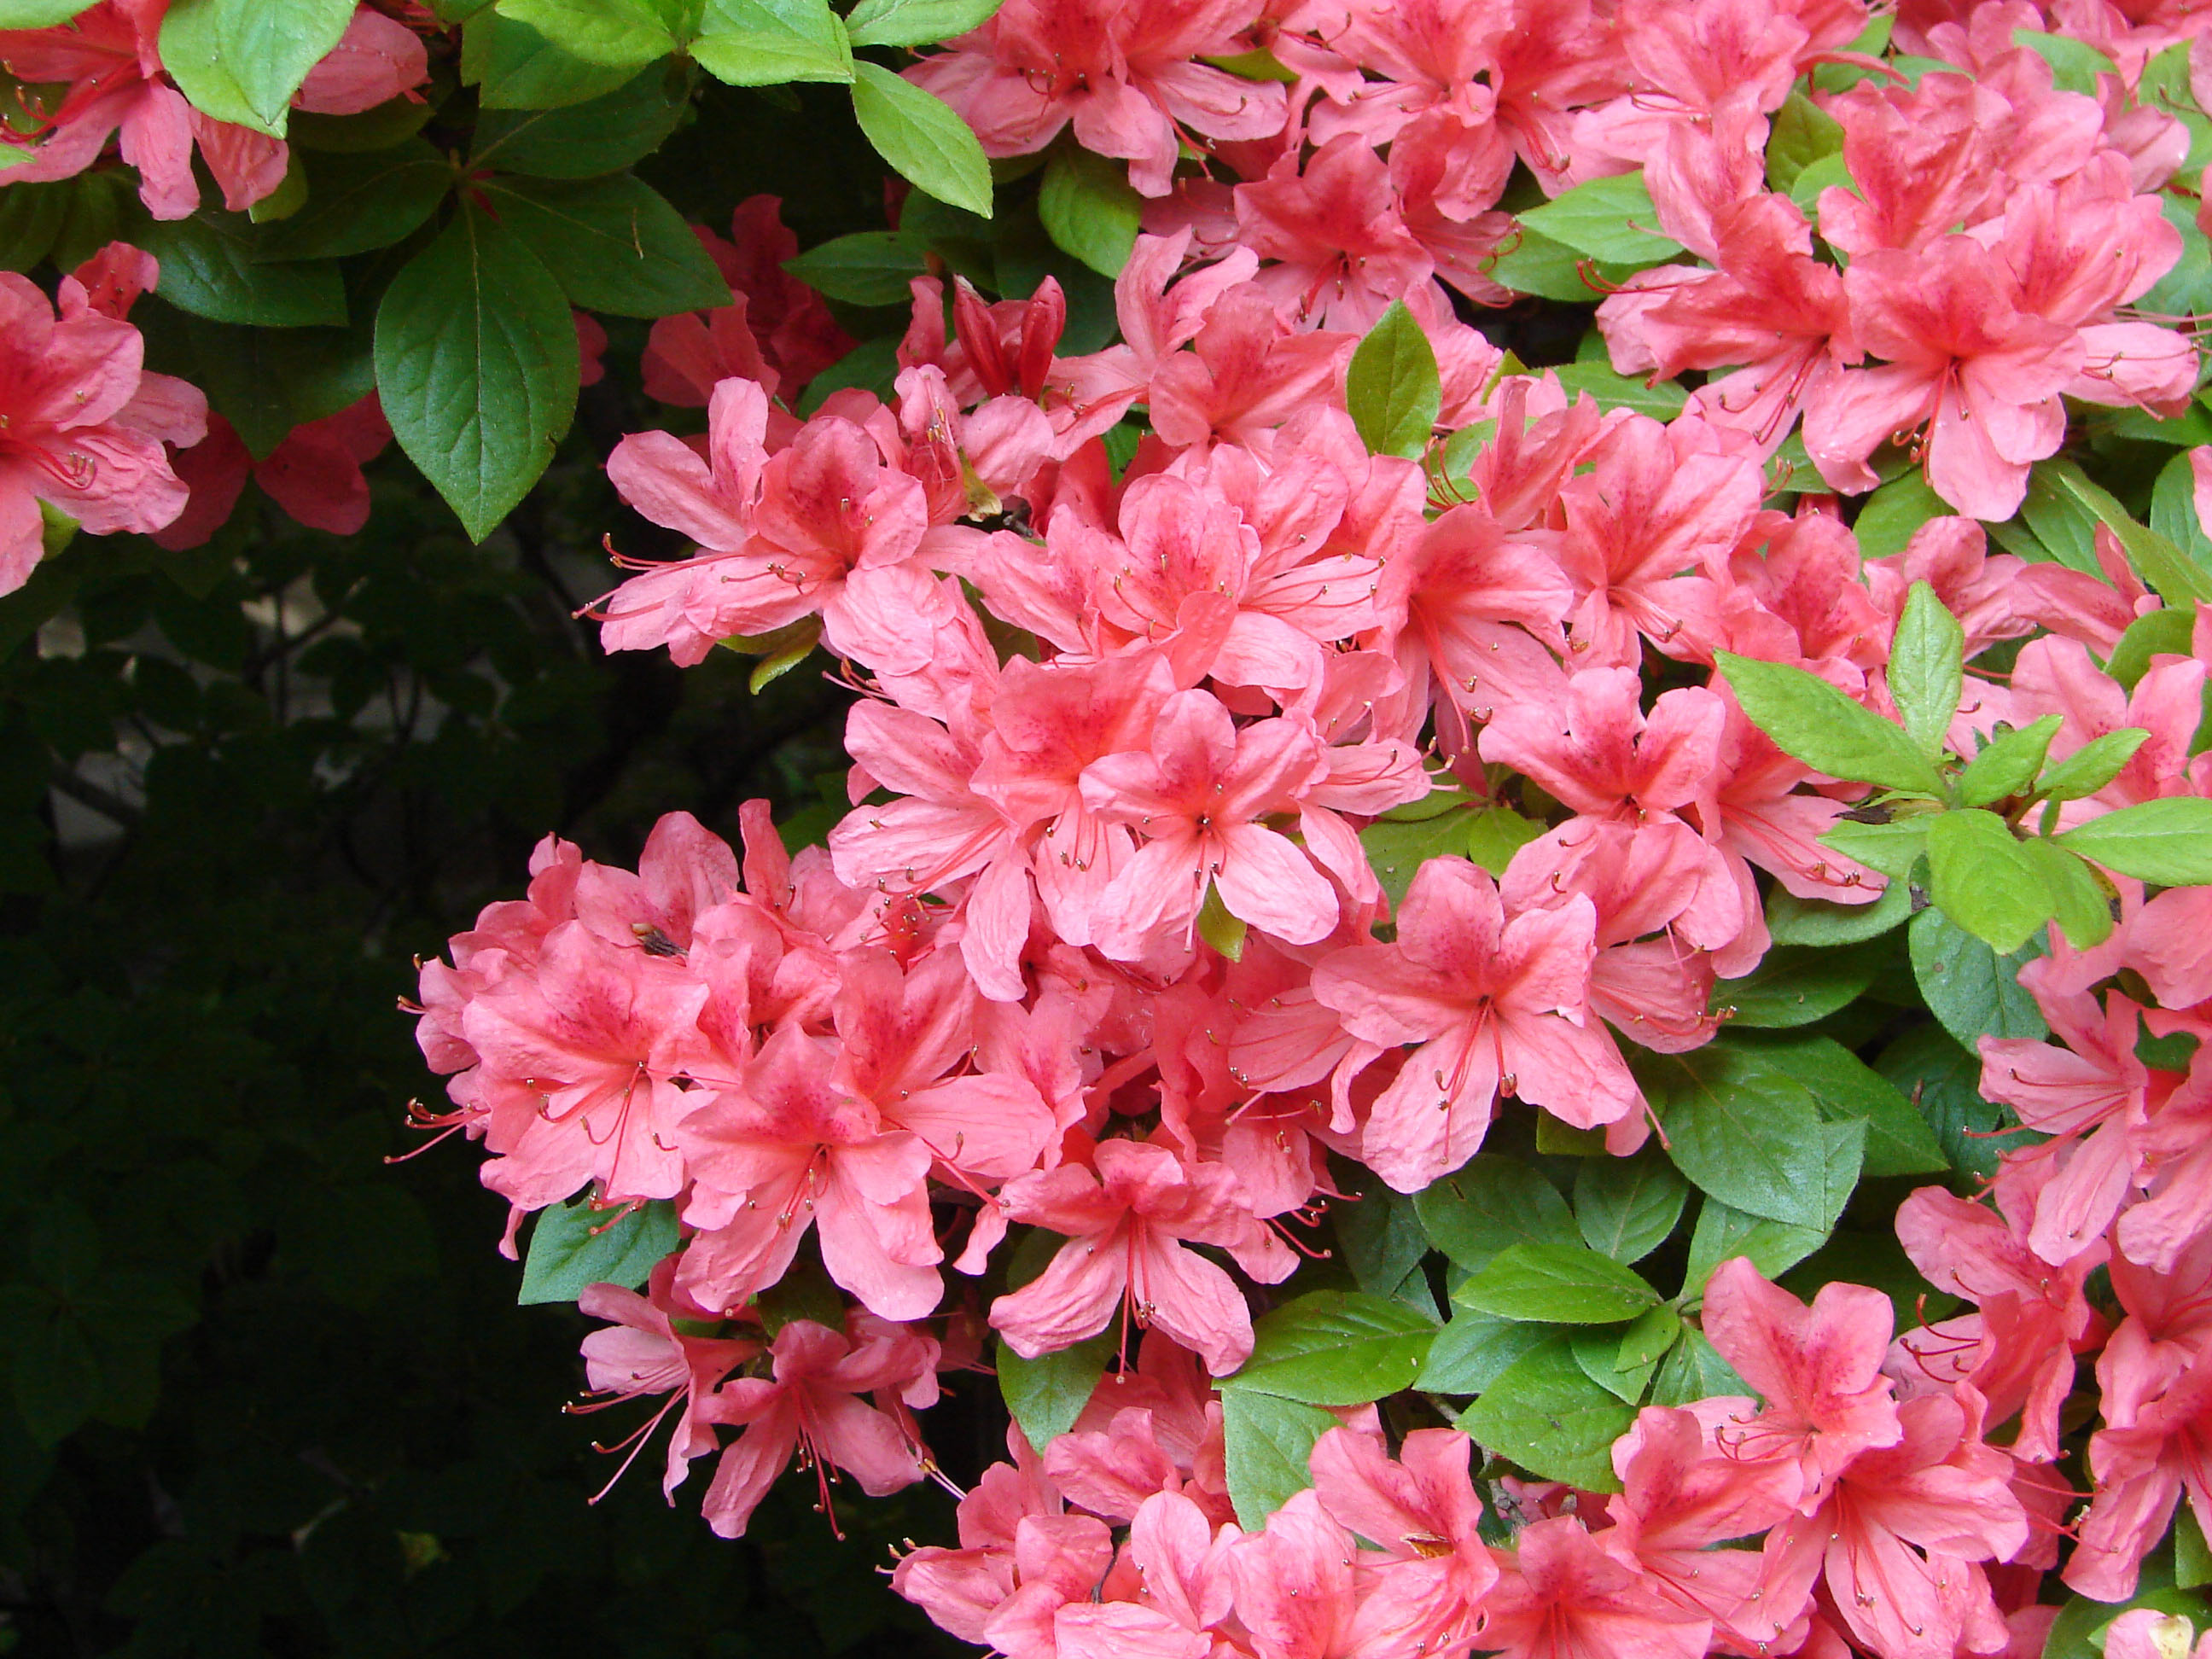 Rhododendrons, Azaleas: Blooming Marvels Of The Plant